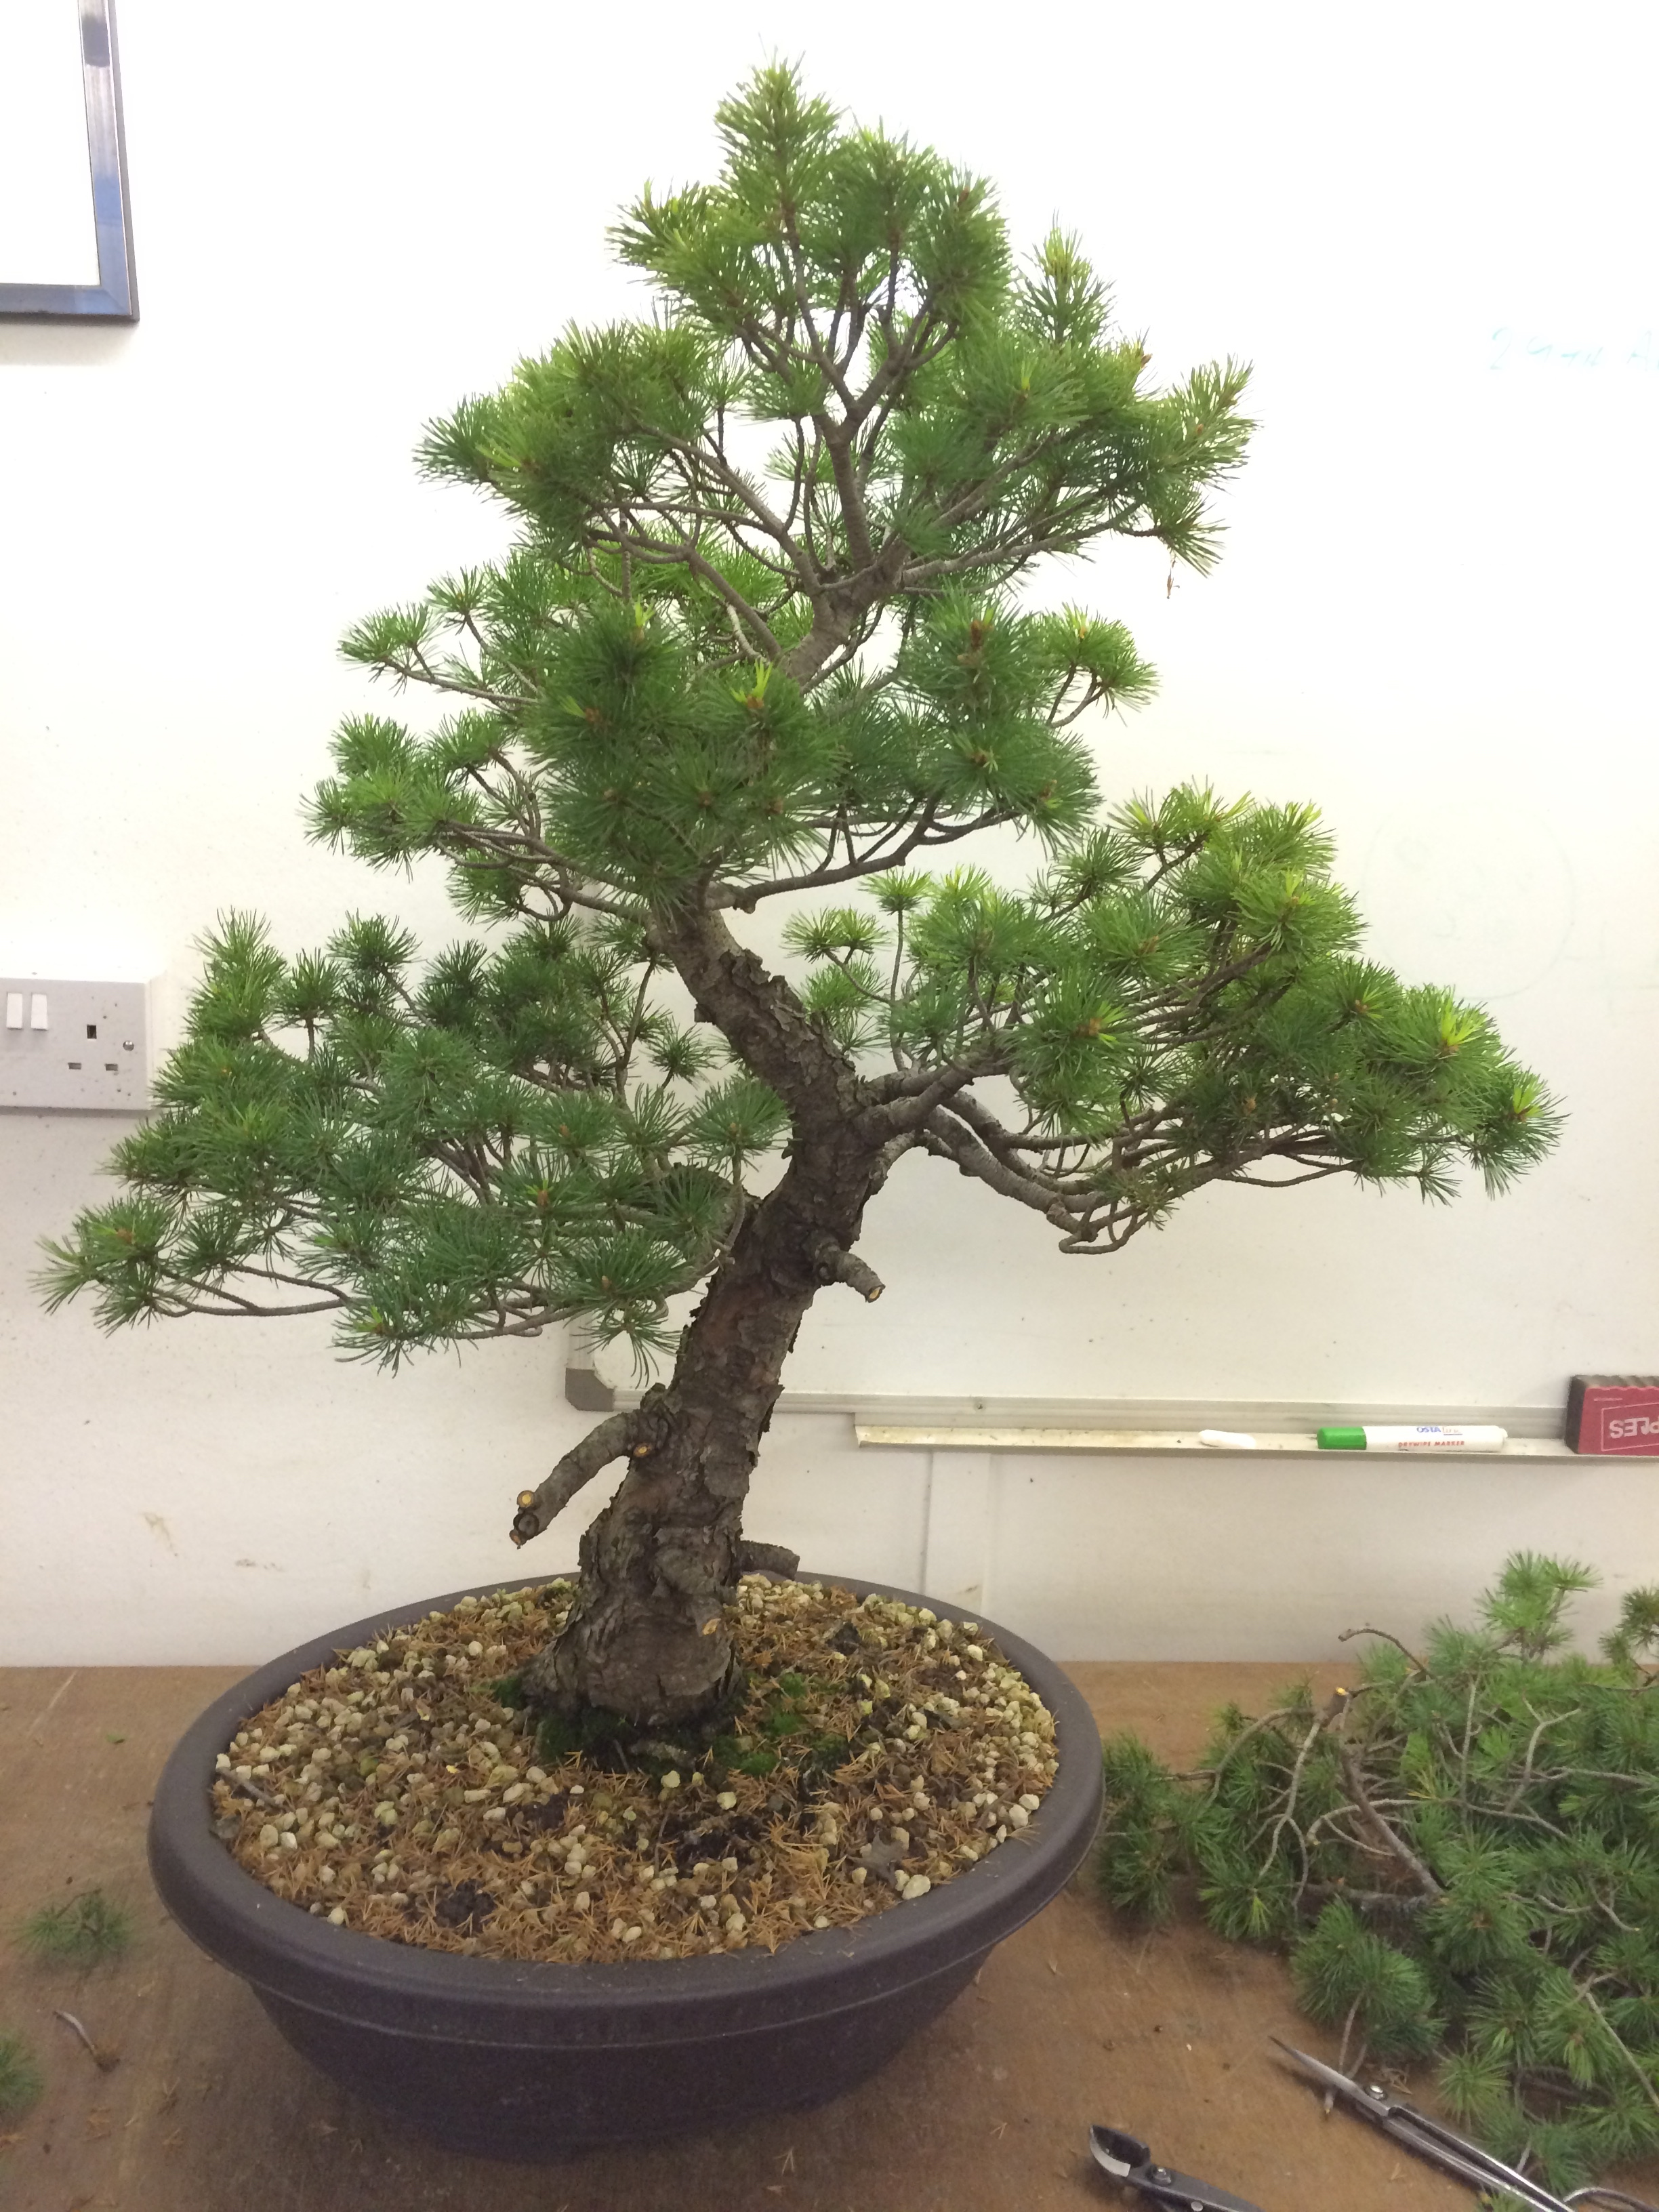 Studio Stories One To With A Kokonoe White Pine John Hanby Wiring In Bonsai The Whole Tree Was Given Close Scrutiny Prepare It Ready For Some Cases Branches Were Removed Whilst Other Areas Just